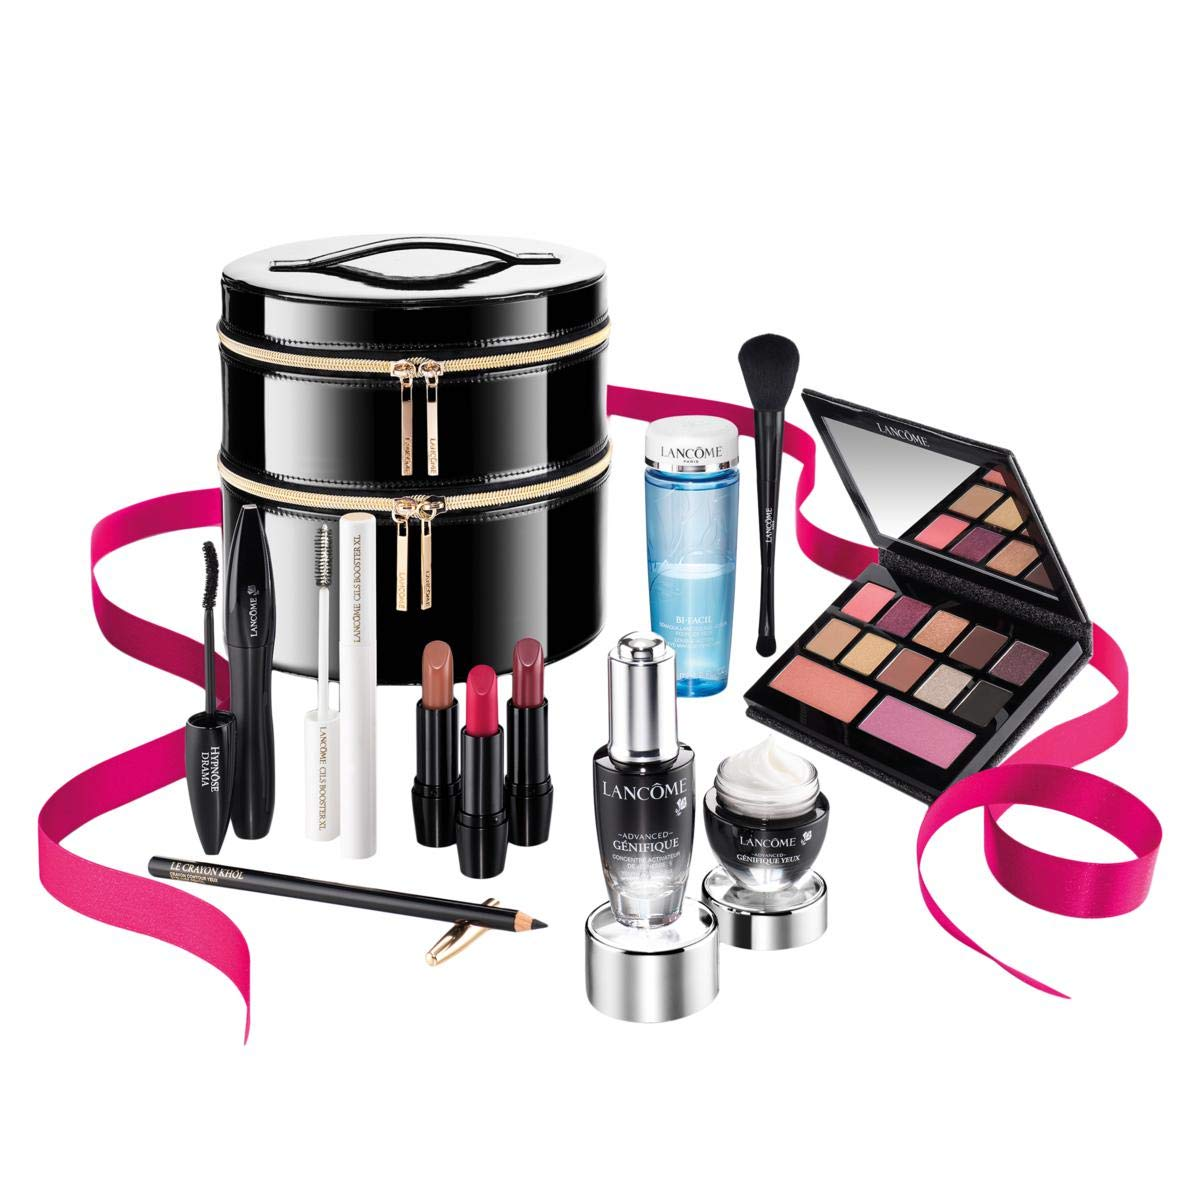 Lancome - Lancome 2019 Holiday Beauty Box in GLAM Collection, 11 Full Size Best Sellers Favorites Set